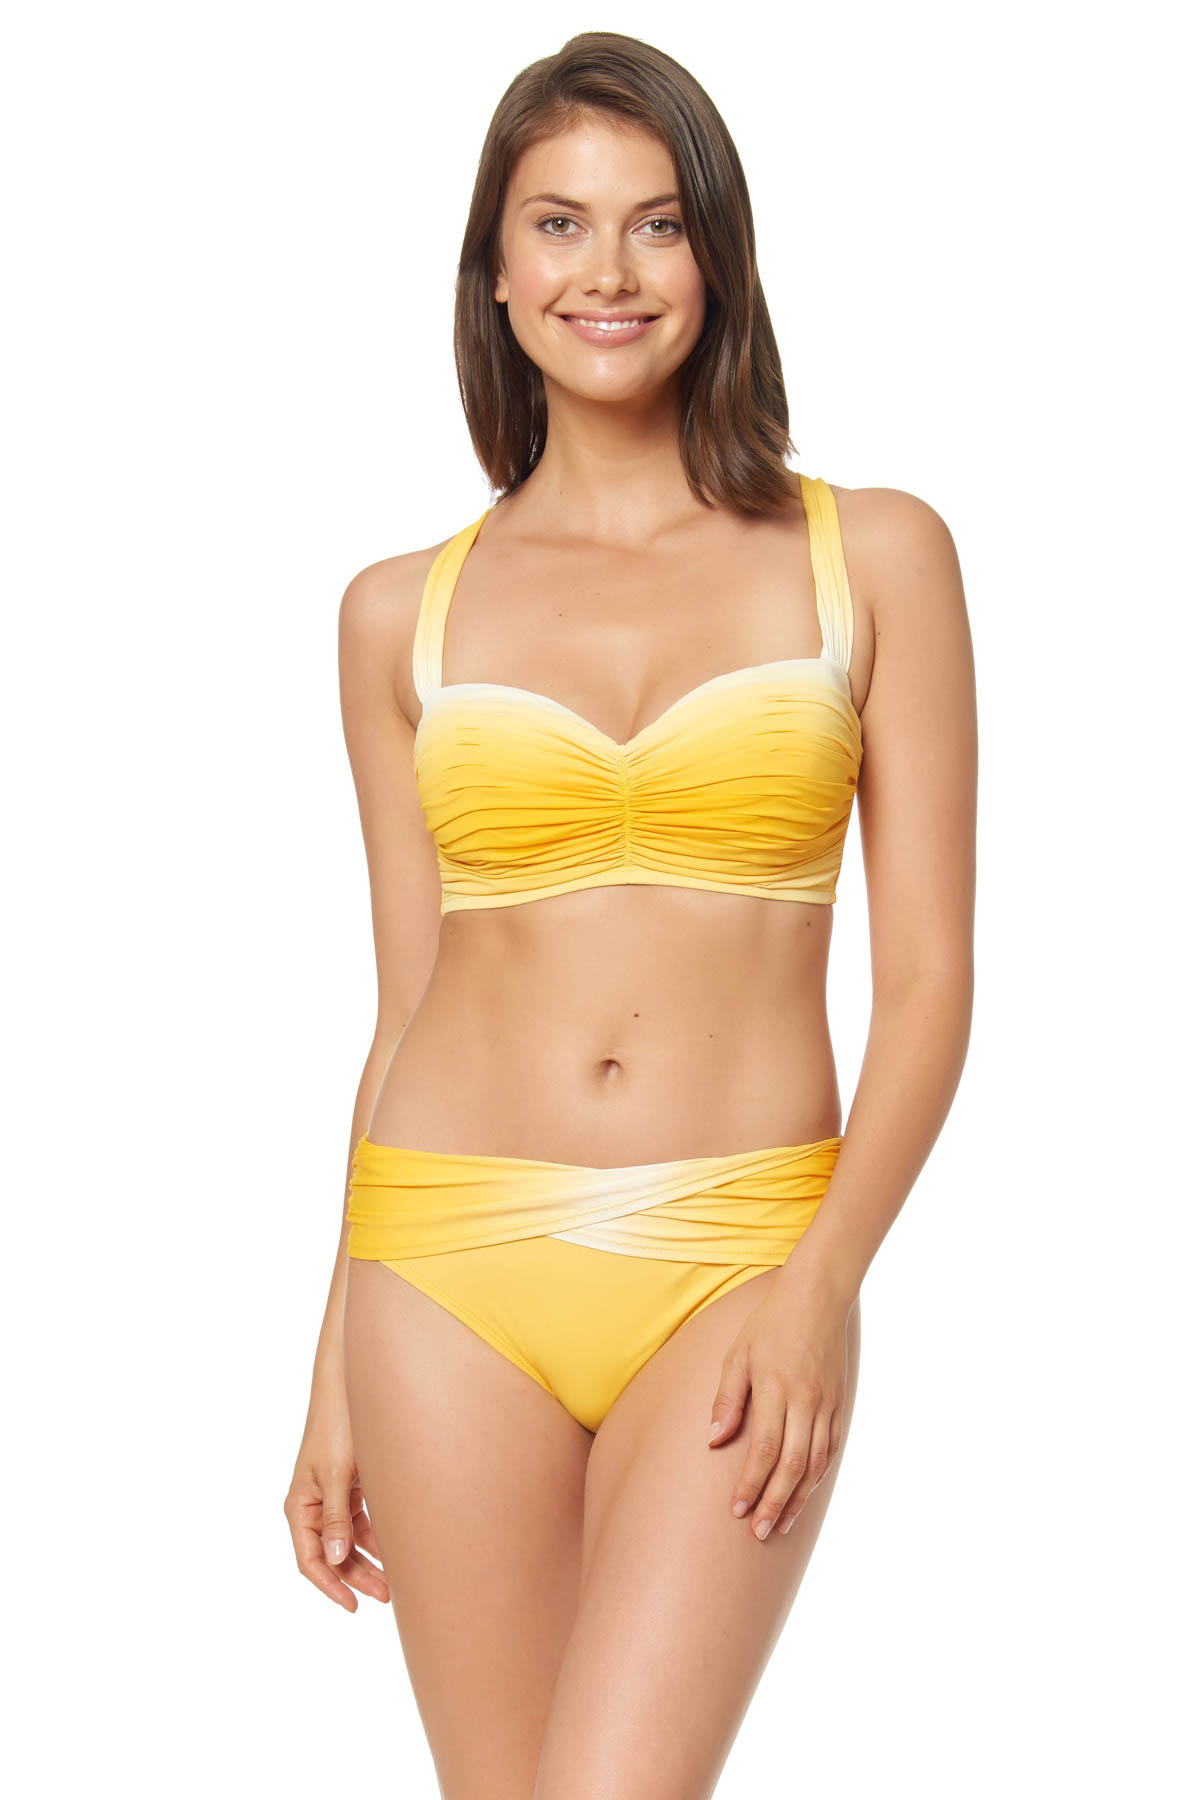 Ombré Underwire Bralette Bikini Top (D Cup) - Sunset Yellow 1